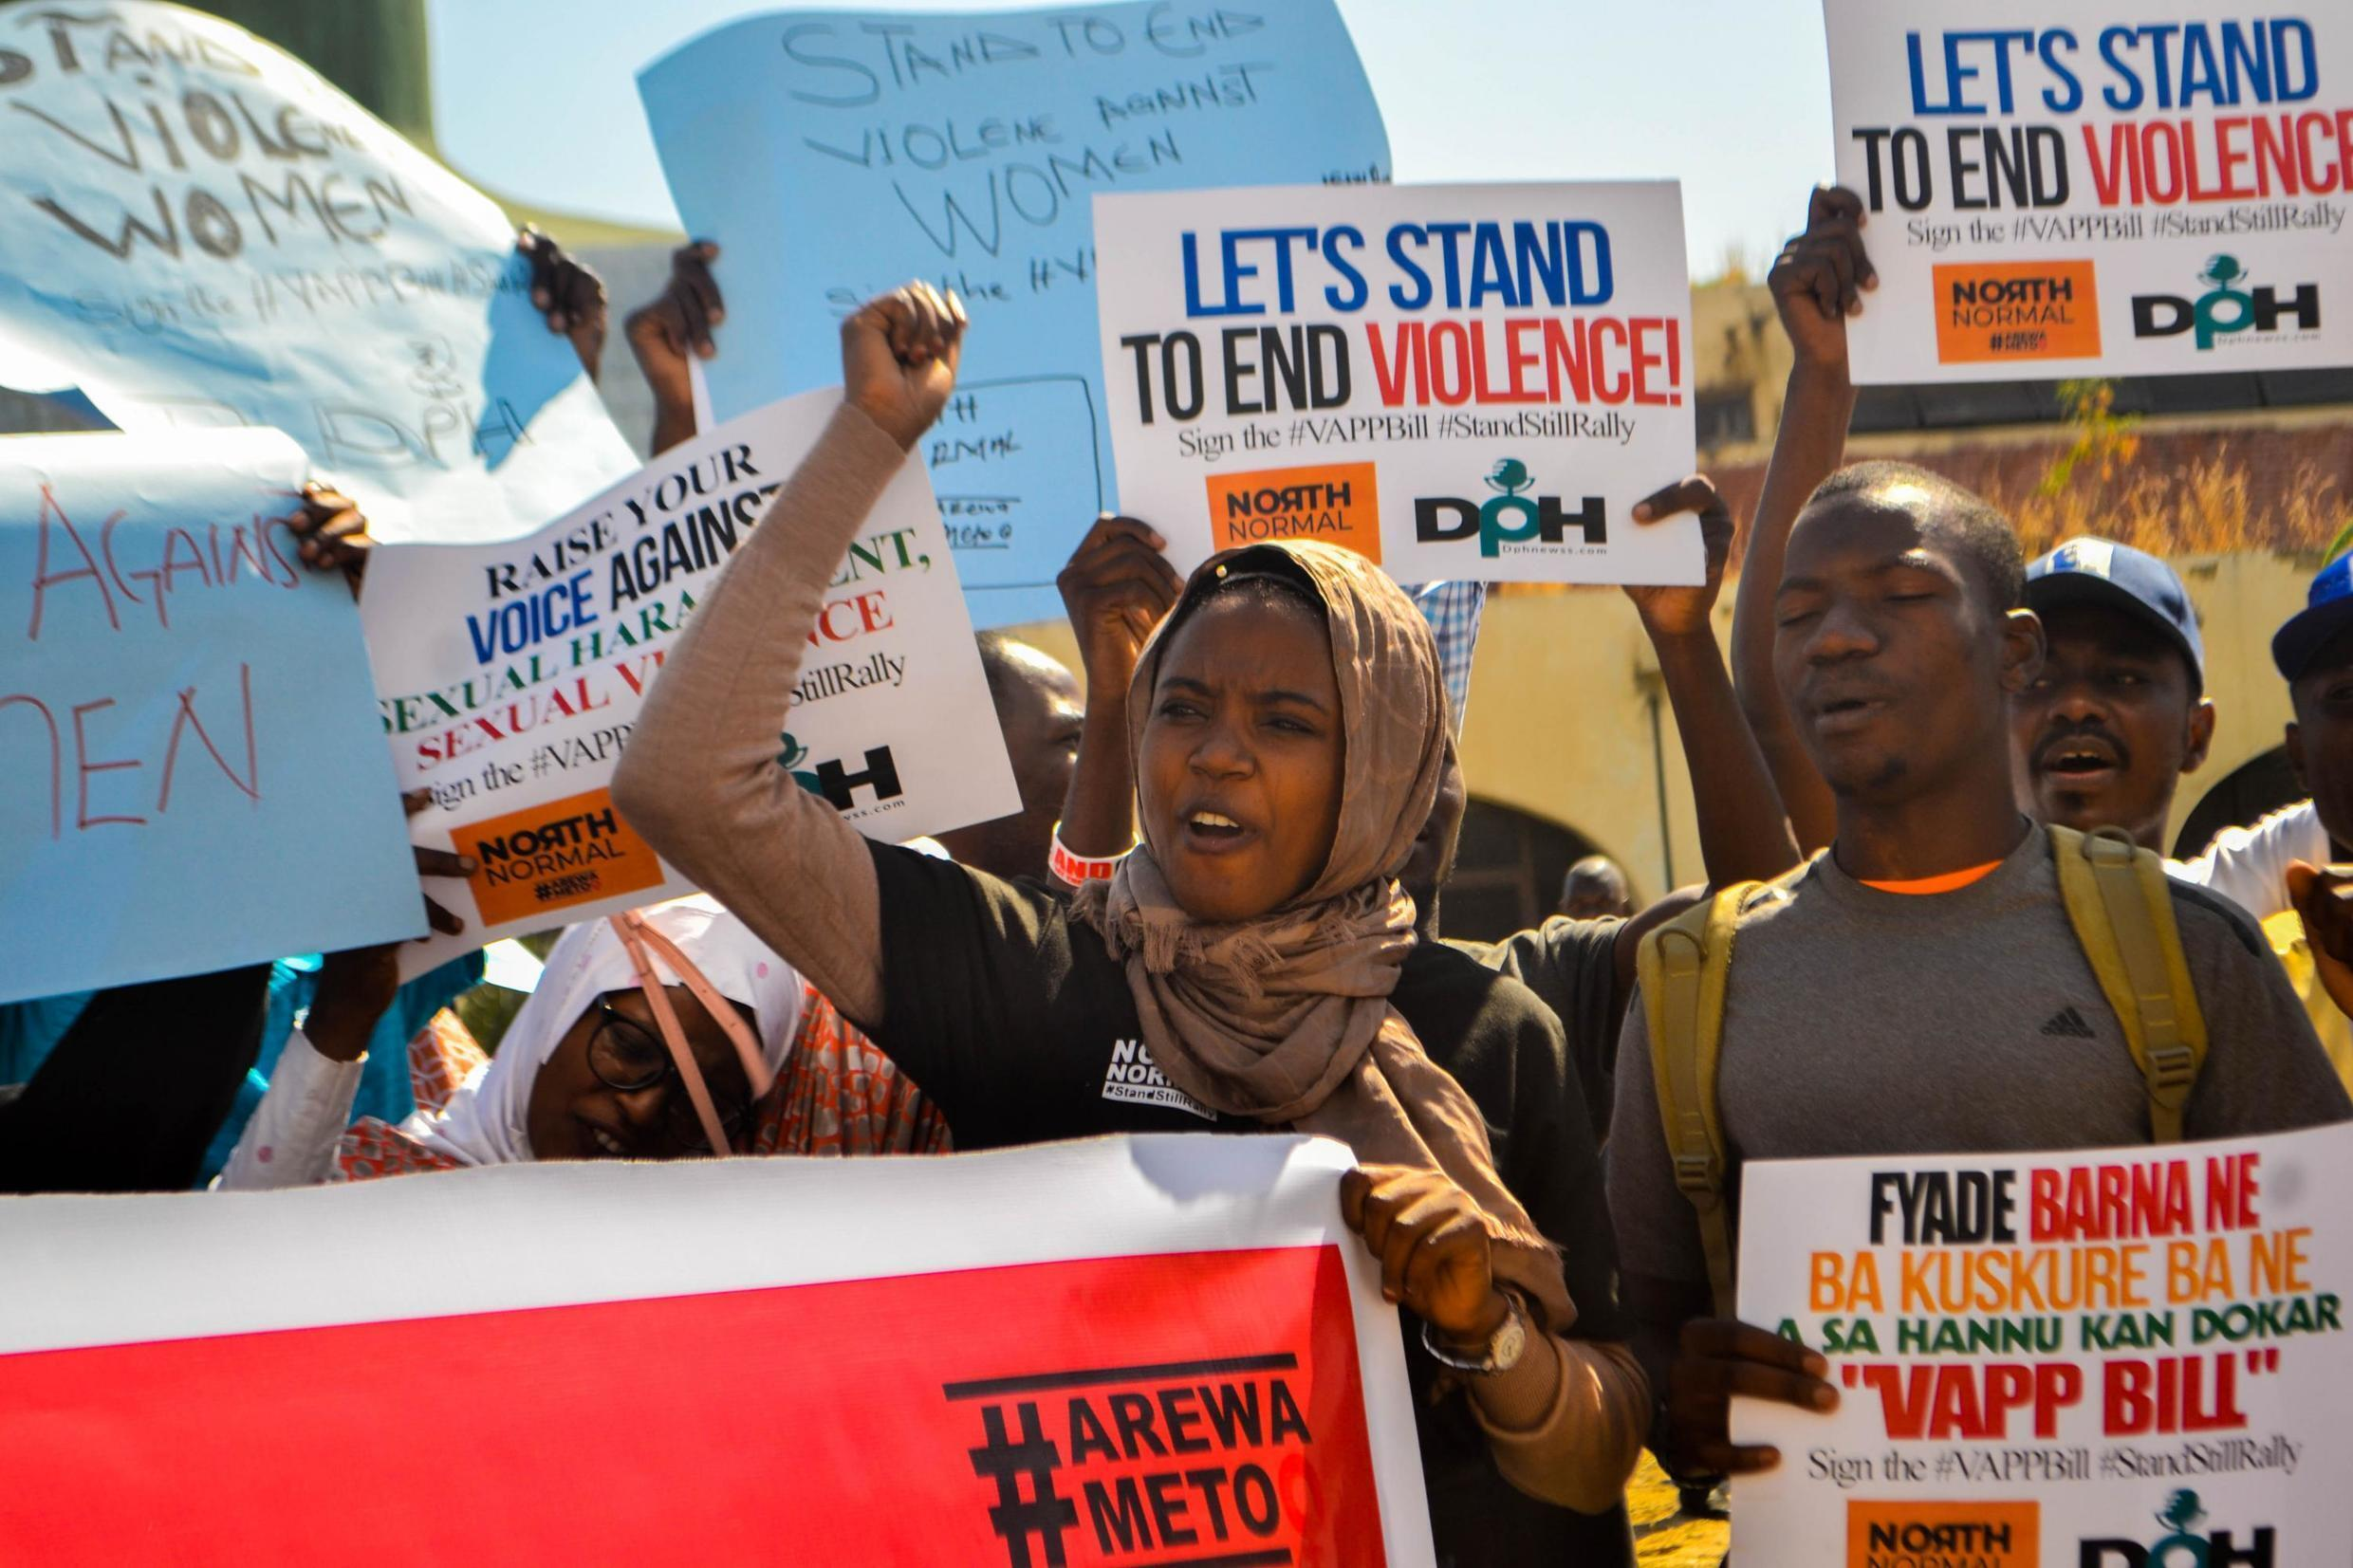 Activists caling for an end to sexual abuse march on the House of Assembly in Kano, northern Nigeria on 25 November, 2019.